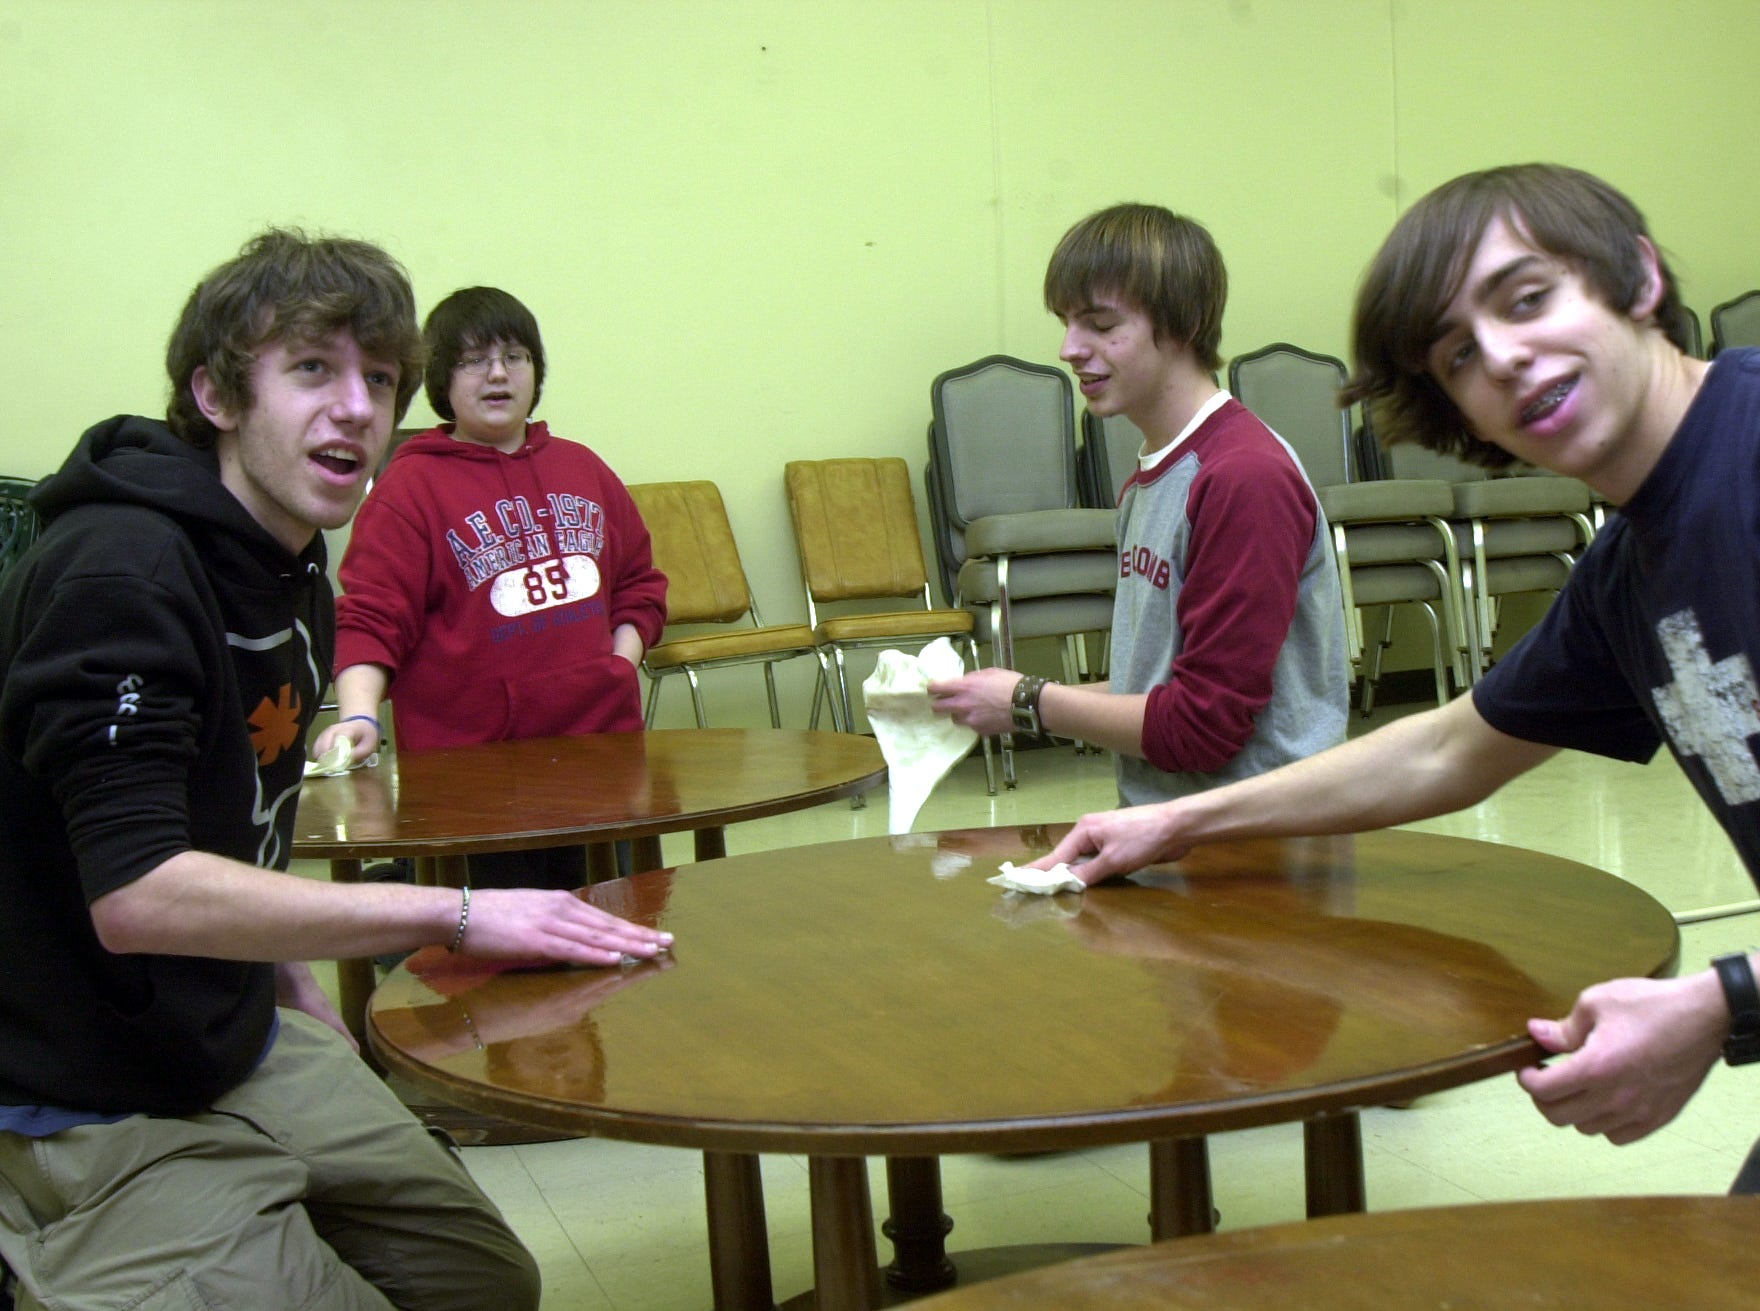 Cleaning a table for resale in the new Anderson County Habitat for Humanity store opening soon in Oak Ridge are, from left, Clinton High School students Jimmy Stout, Andrew Taylor, Tyler Morrow and Stephen Norrod.    March 25, 2005.